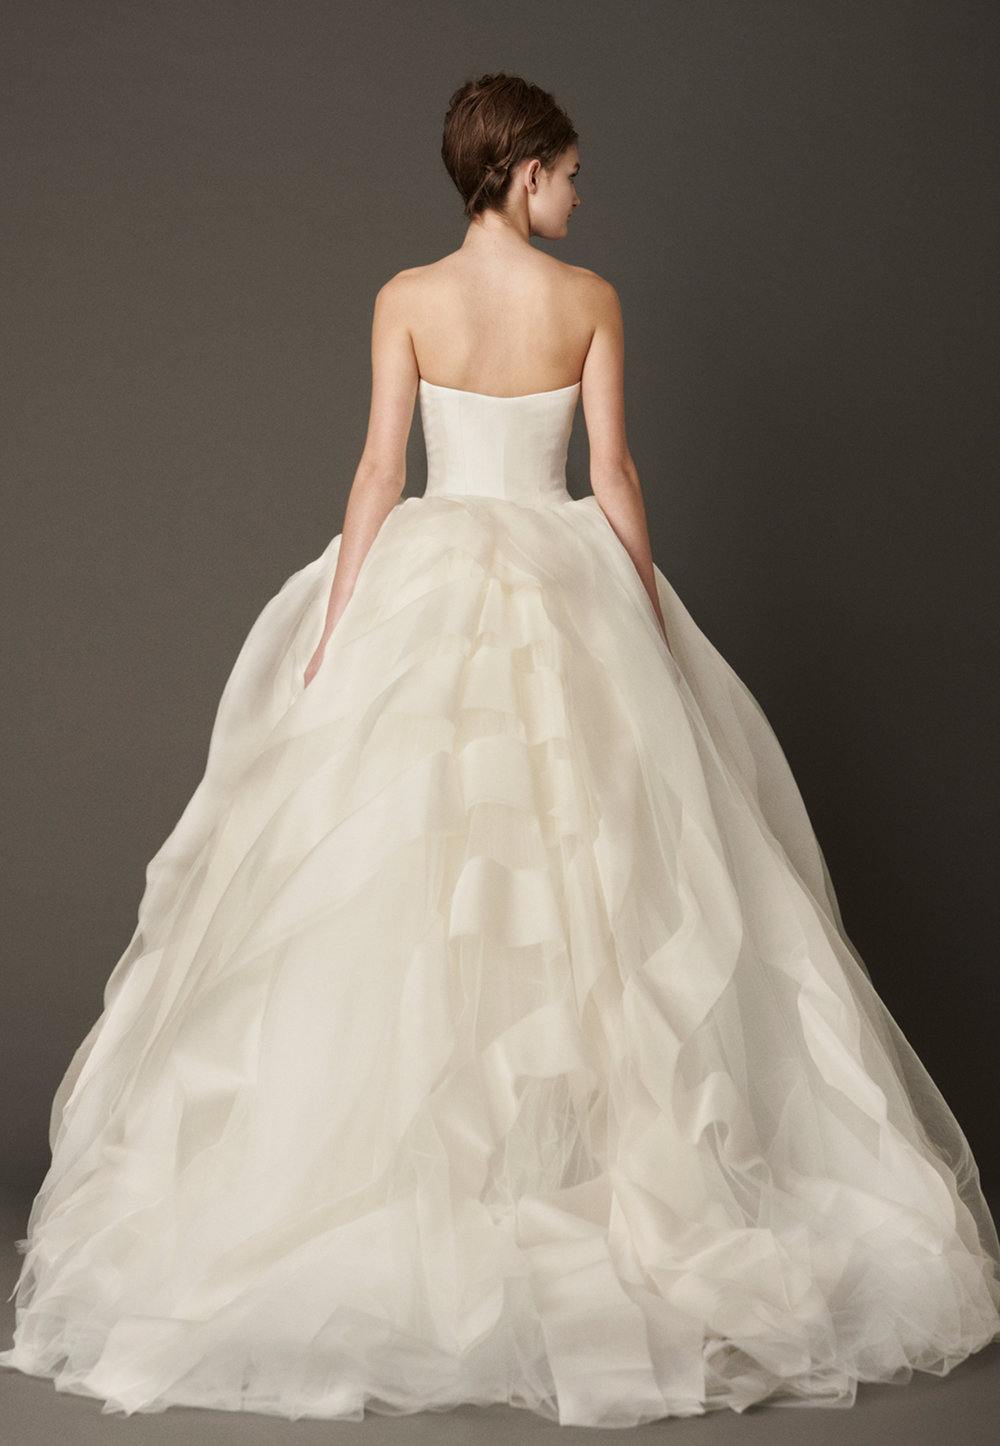 Iconic Style    Gown Name: Liesel    Description: A strapless ball gown with ribbon embroidered bodice and silk organza floating flange skirt accented by lace appliqué detail at hem. Available in white or ivory.